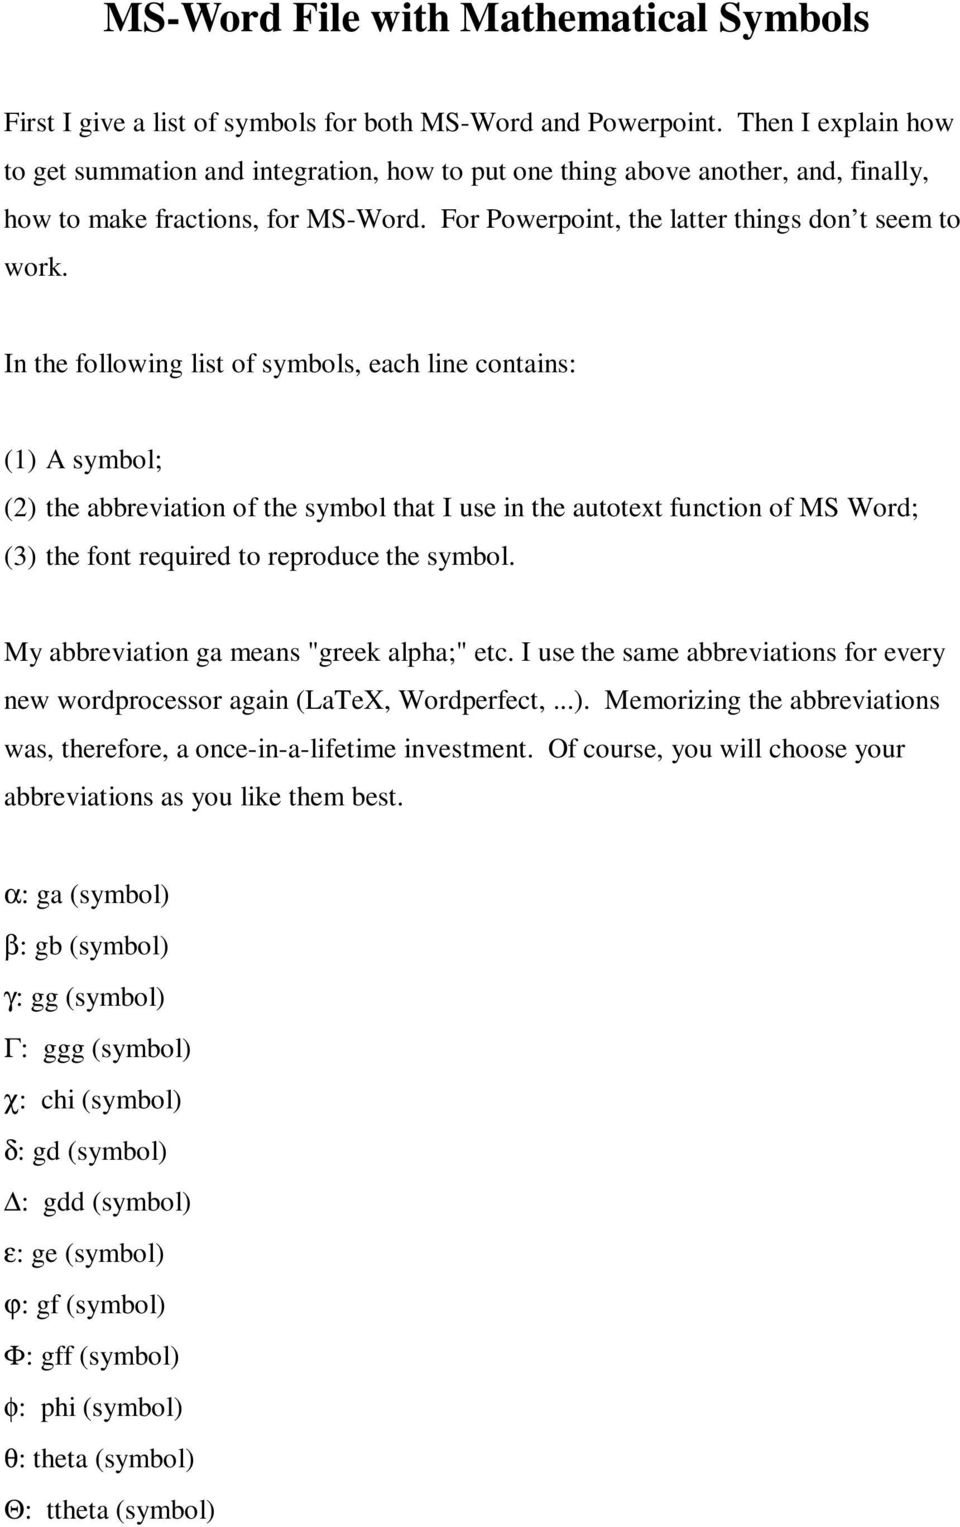 ms-word file with mathematical symbols - pdf